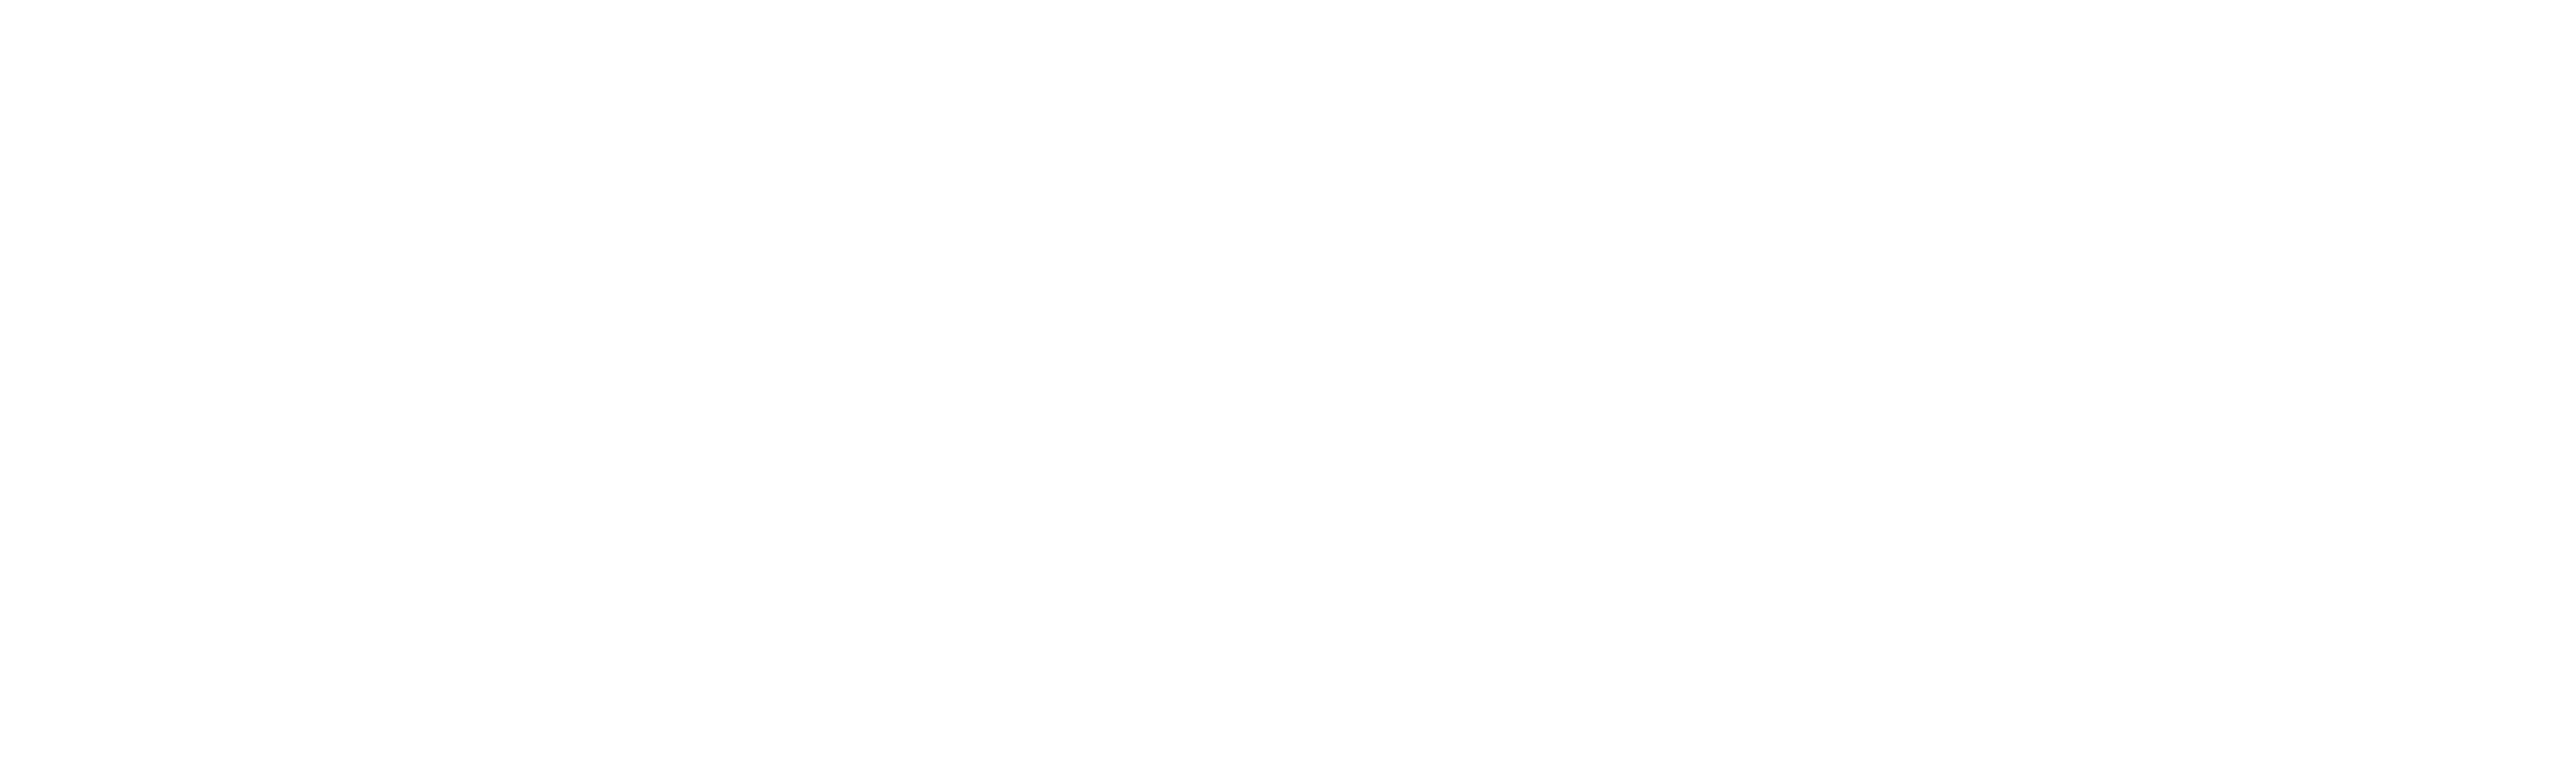 Beyond Barriers Consulting